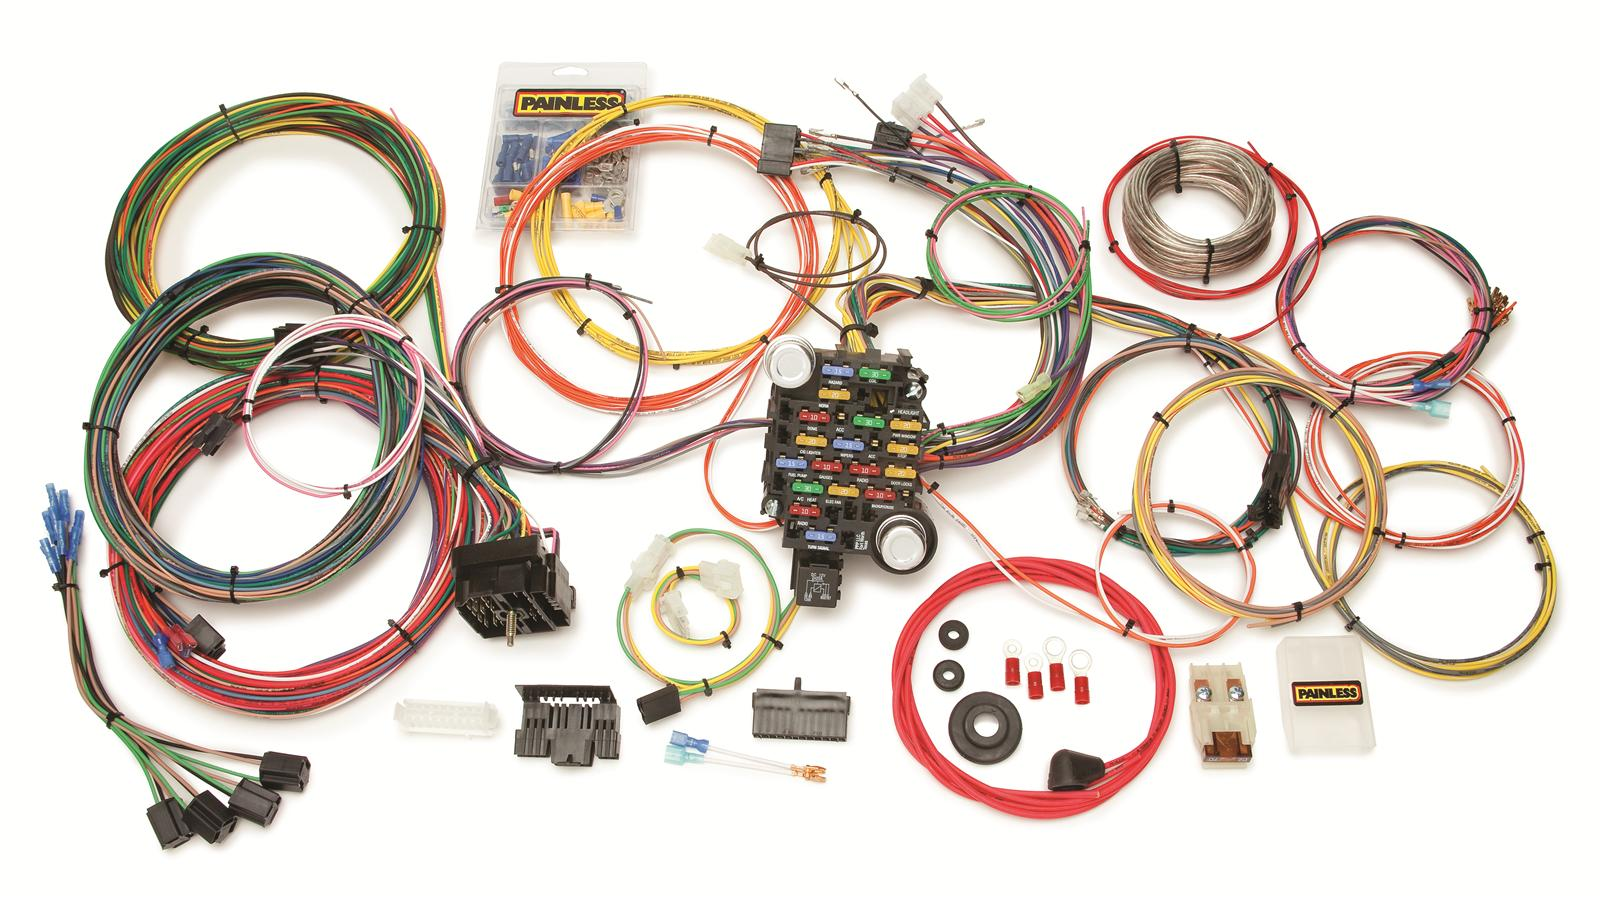 prf 10205_xl painless performance gmc chevy truck harnesses 10205 free 1983 chevy k10 wiring harness at bayanpartner.co